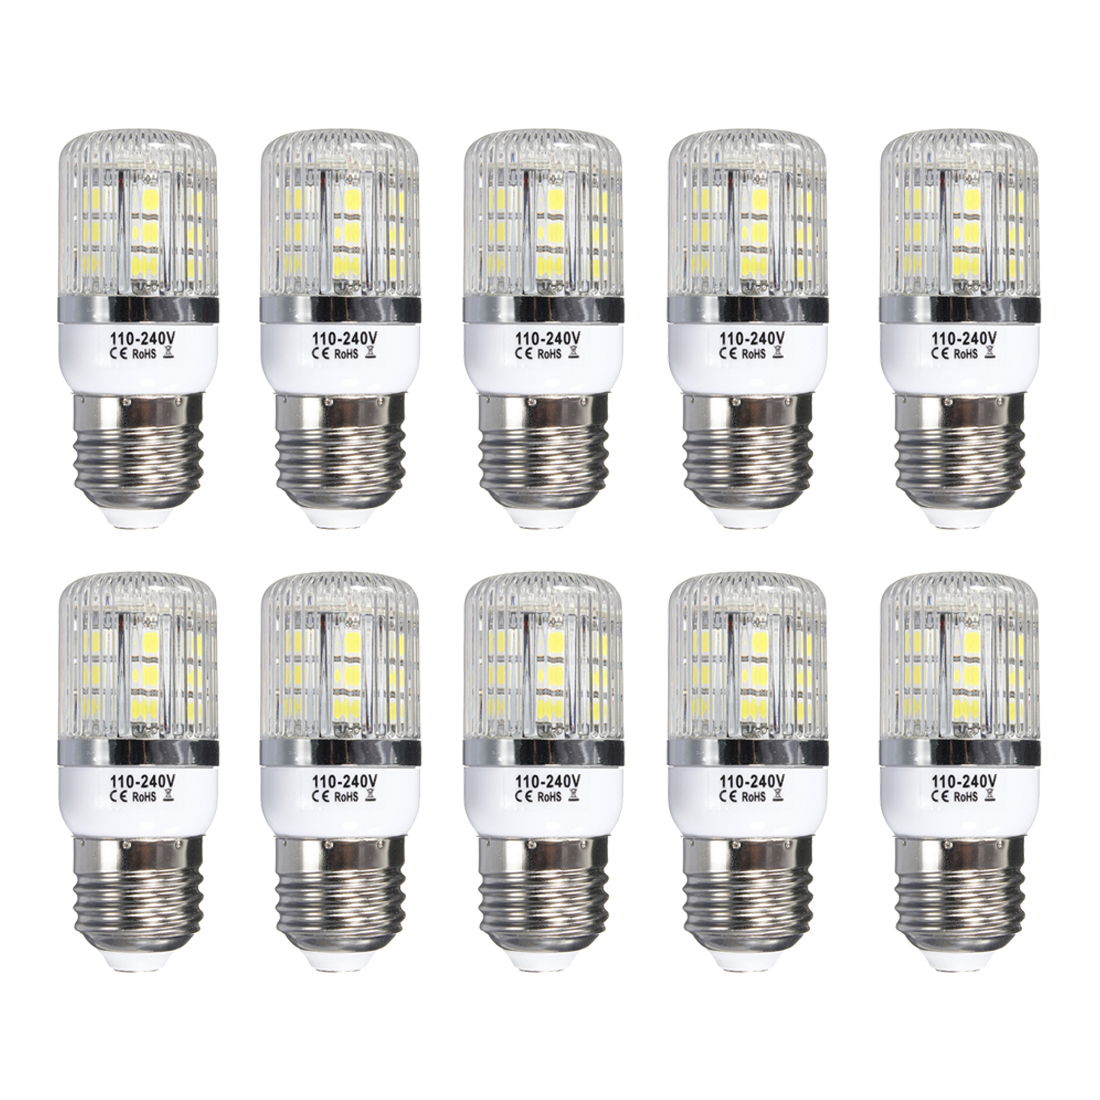 E27 5W Dimmable 27 SMD 5050 LED Corn Light Bulb Lamp Base Type:E27-5W Pure White(6000-6500K) Amount:10 Pcs g9 5w dimmable 27 smd 5050 led corn light bulb lamp color temperature pure white 6000 6500k amount 8 pcs